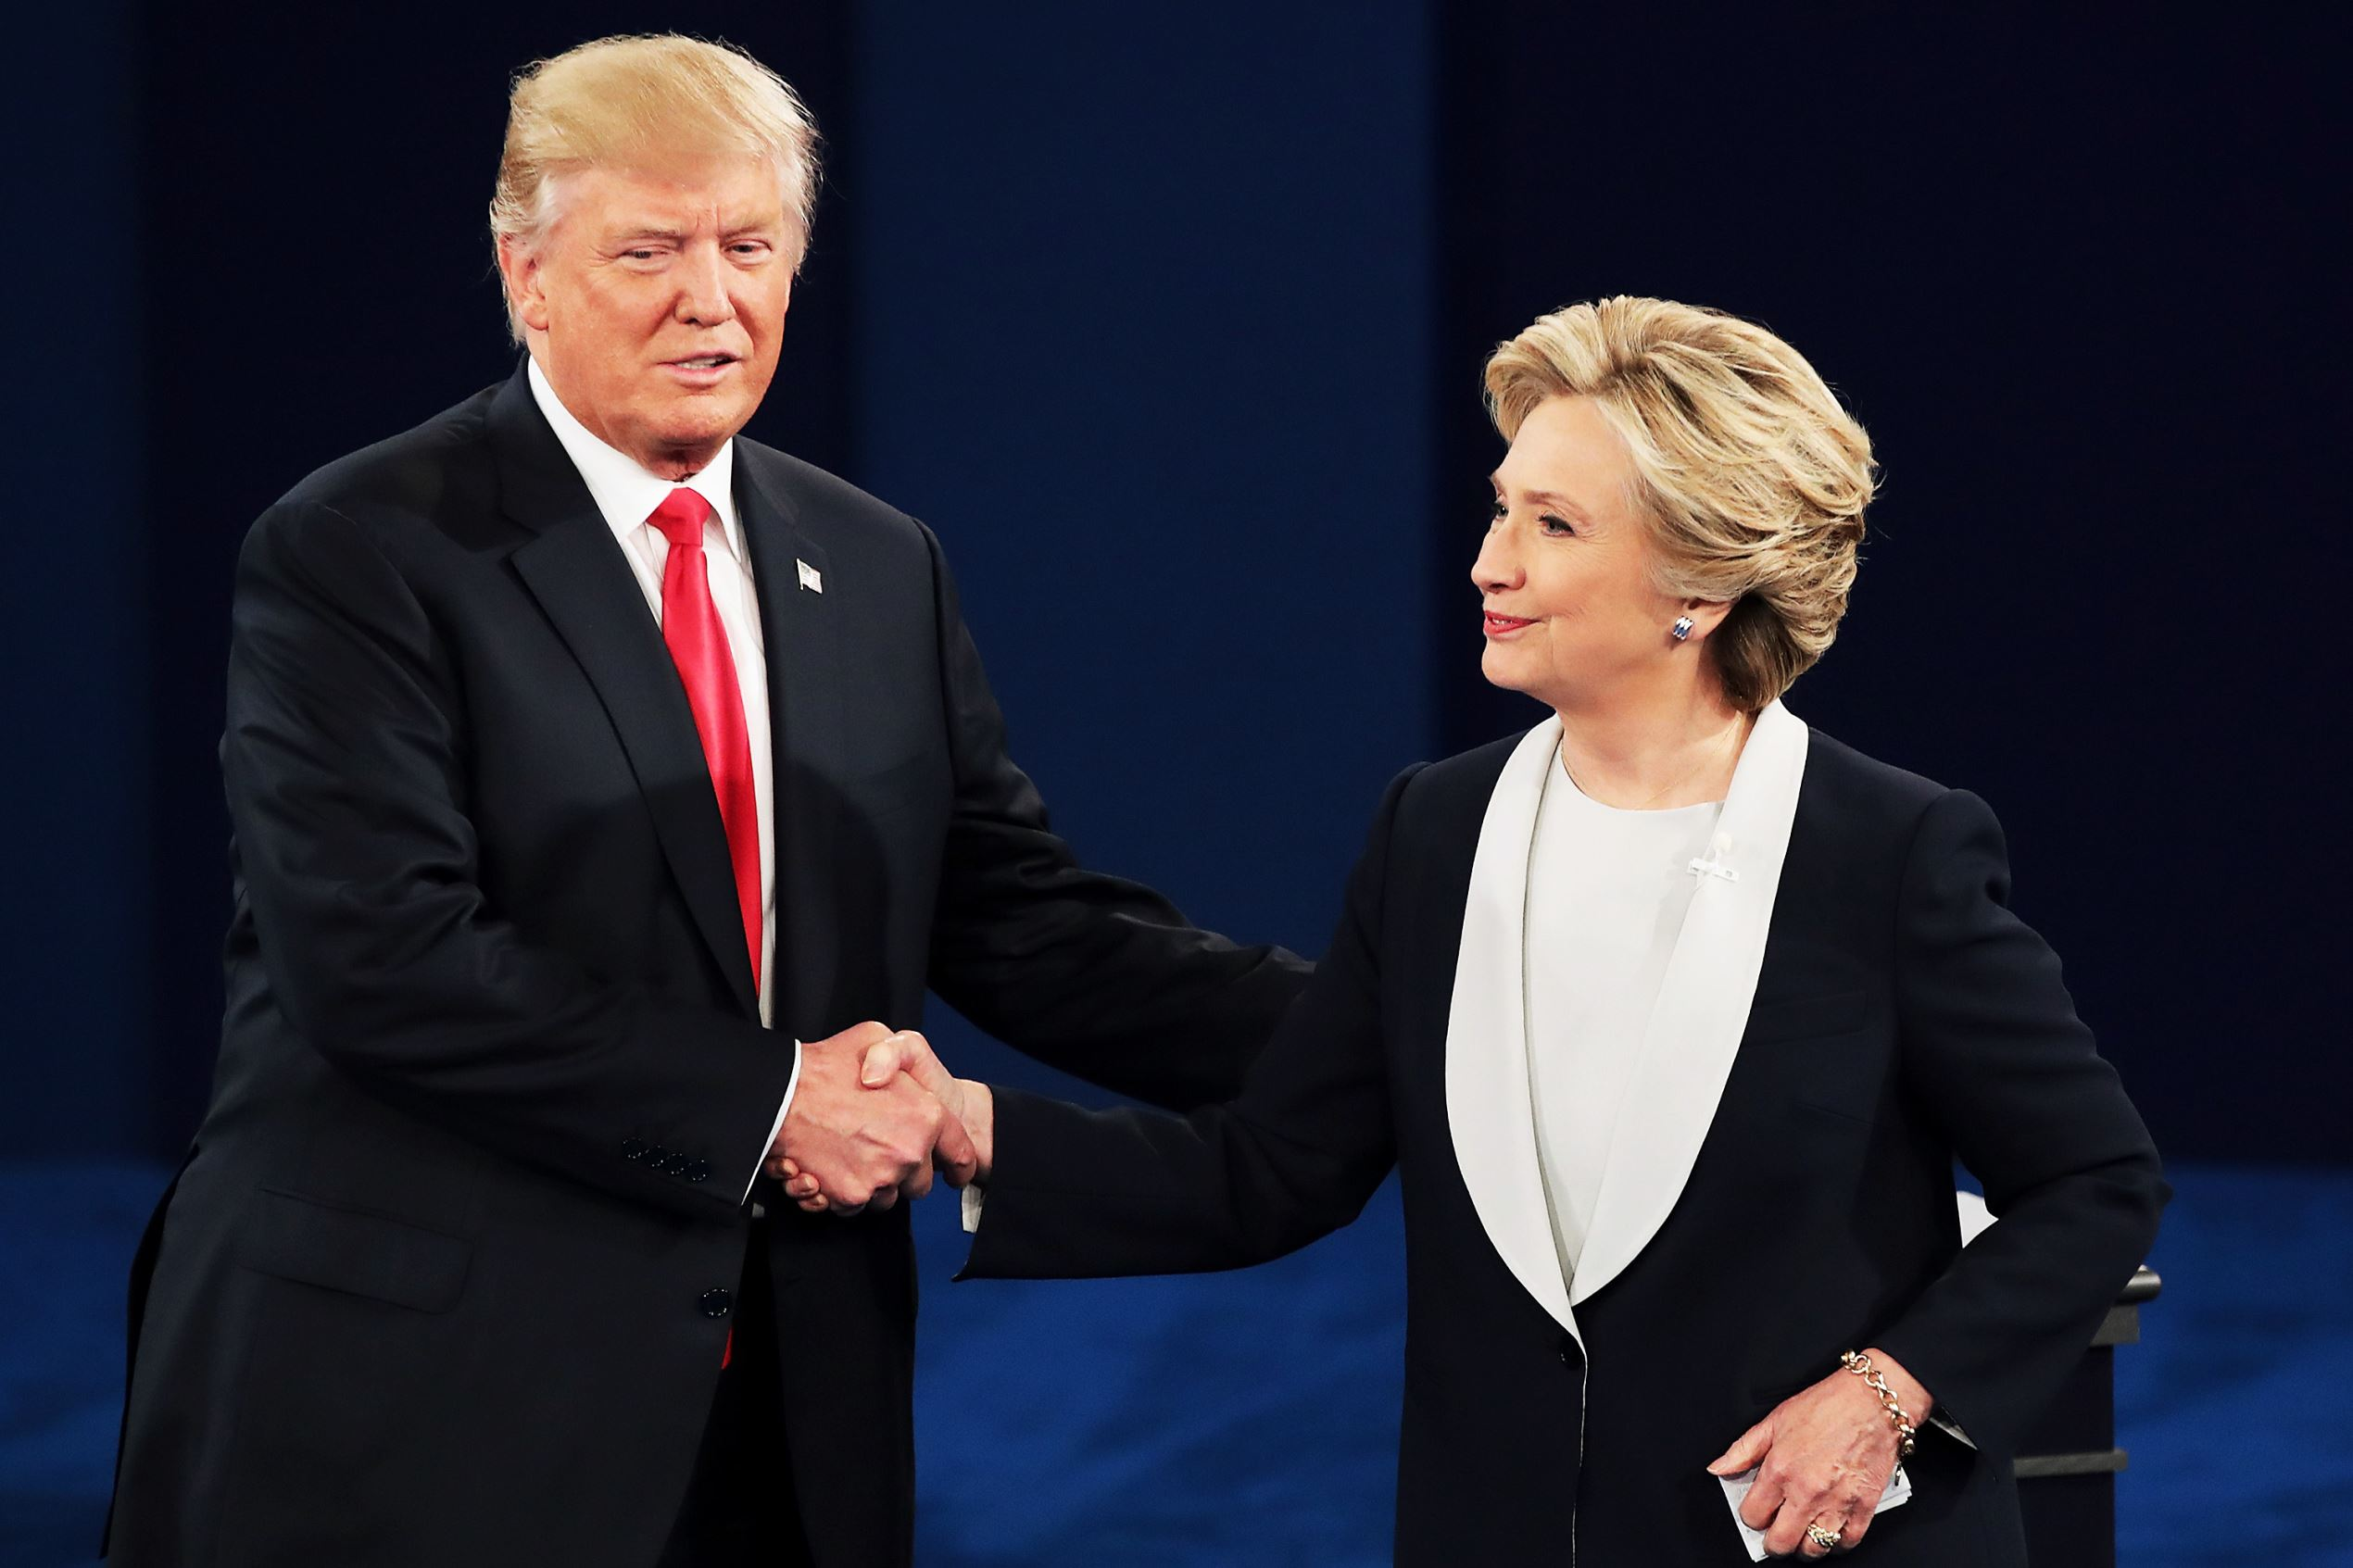 Republican presidential nominee Donald Trump shakes hands with Democratic presidential nominee former Secretary of State Hillary Clinton during the town hall debate at Washington University on Oct. 9, in St Louis, Missouri. This is the second of three presidential debates scheduled prior to the Nov. 8th election.